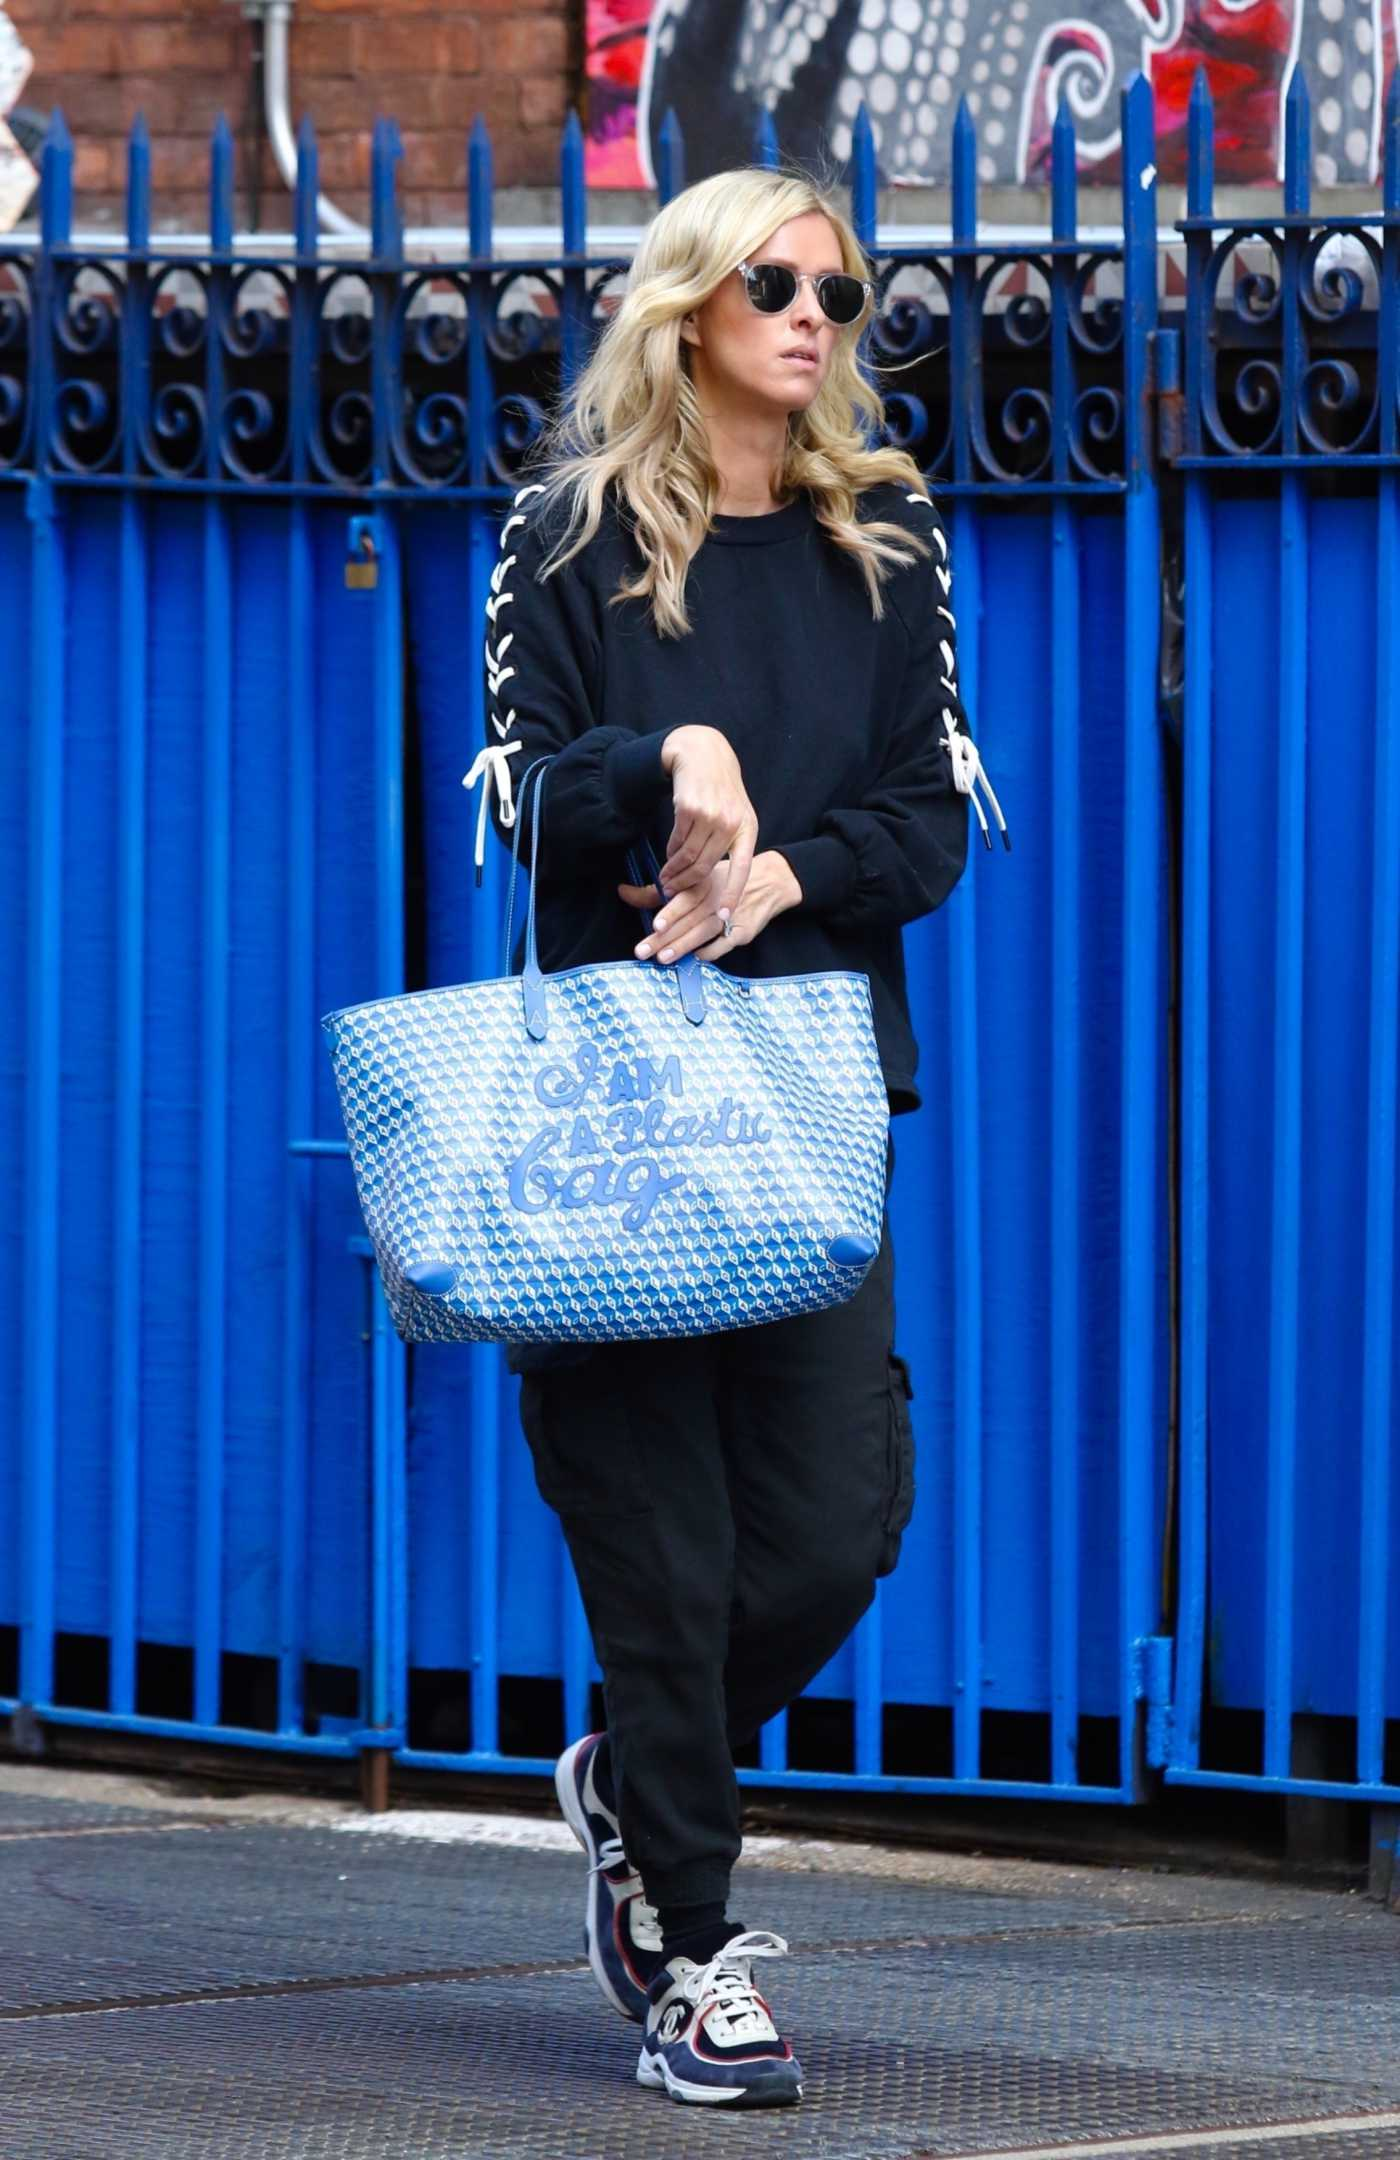 Nicky Hilton in a Black Outfit Was Seen Out in New York City 05/13/2021